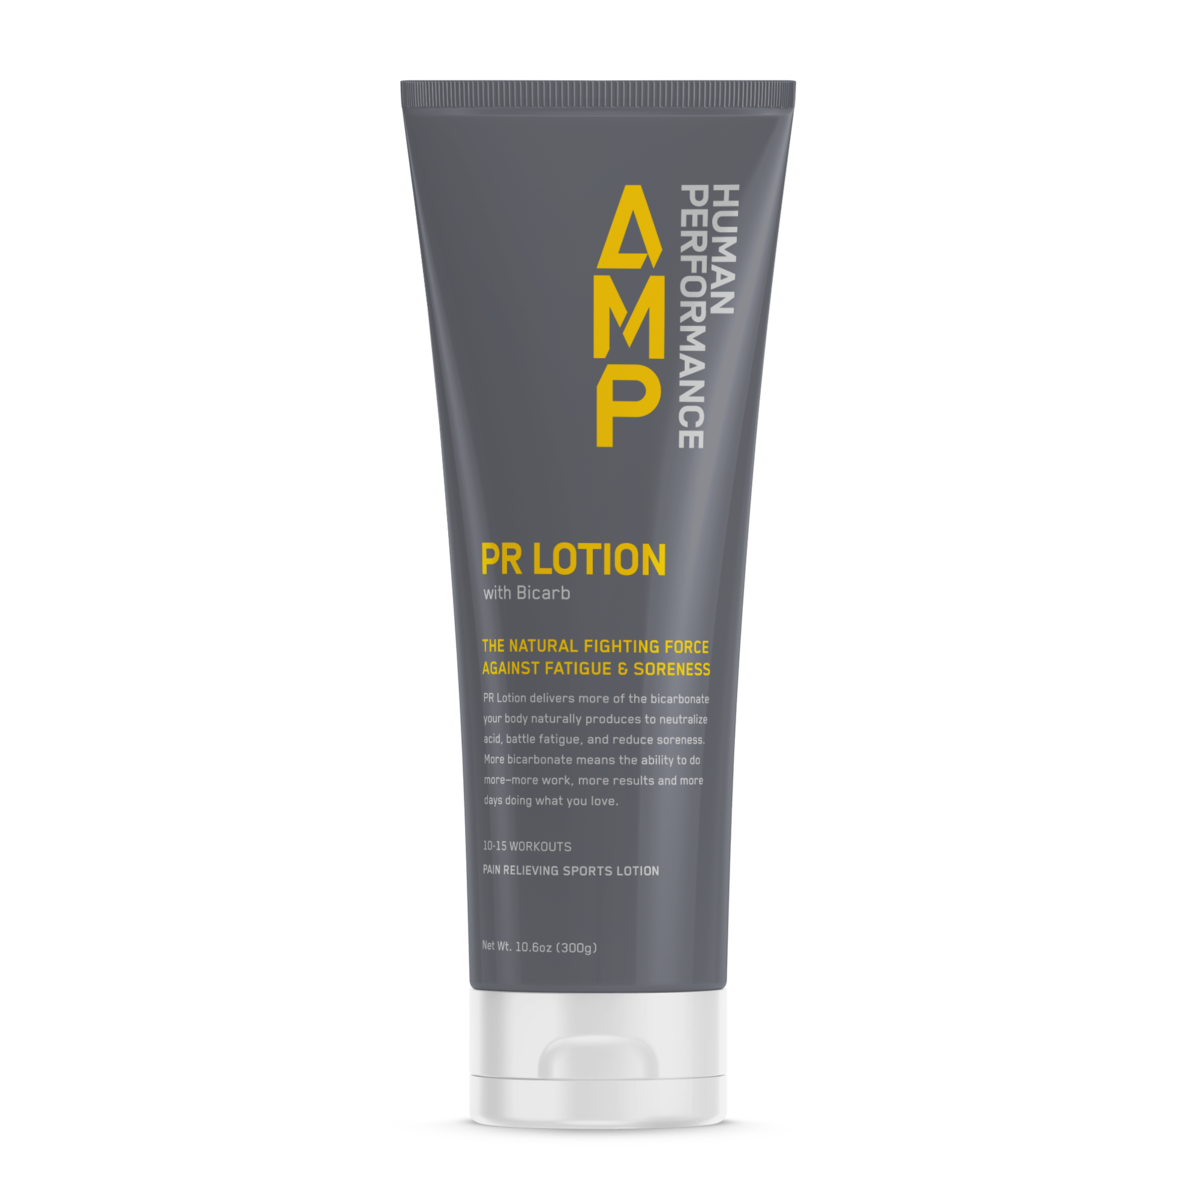 PR lotion is used by many long distance runners to increase endurance.